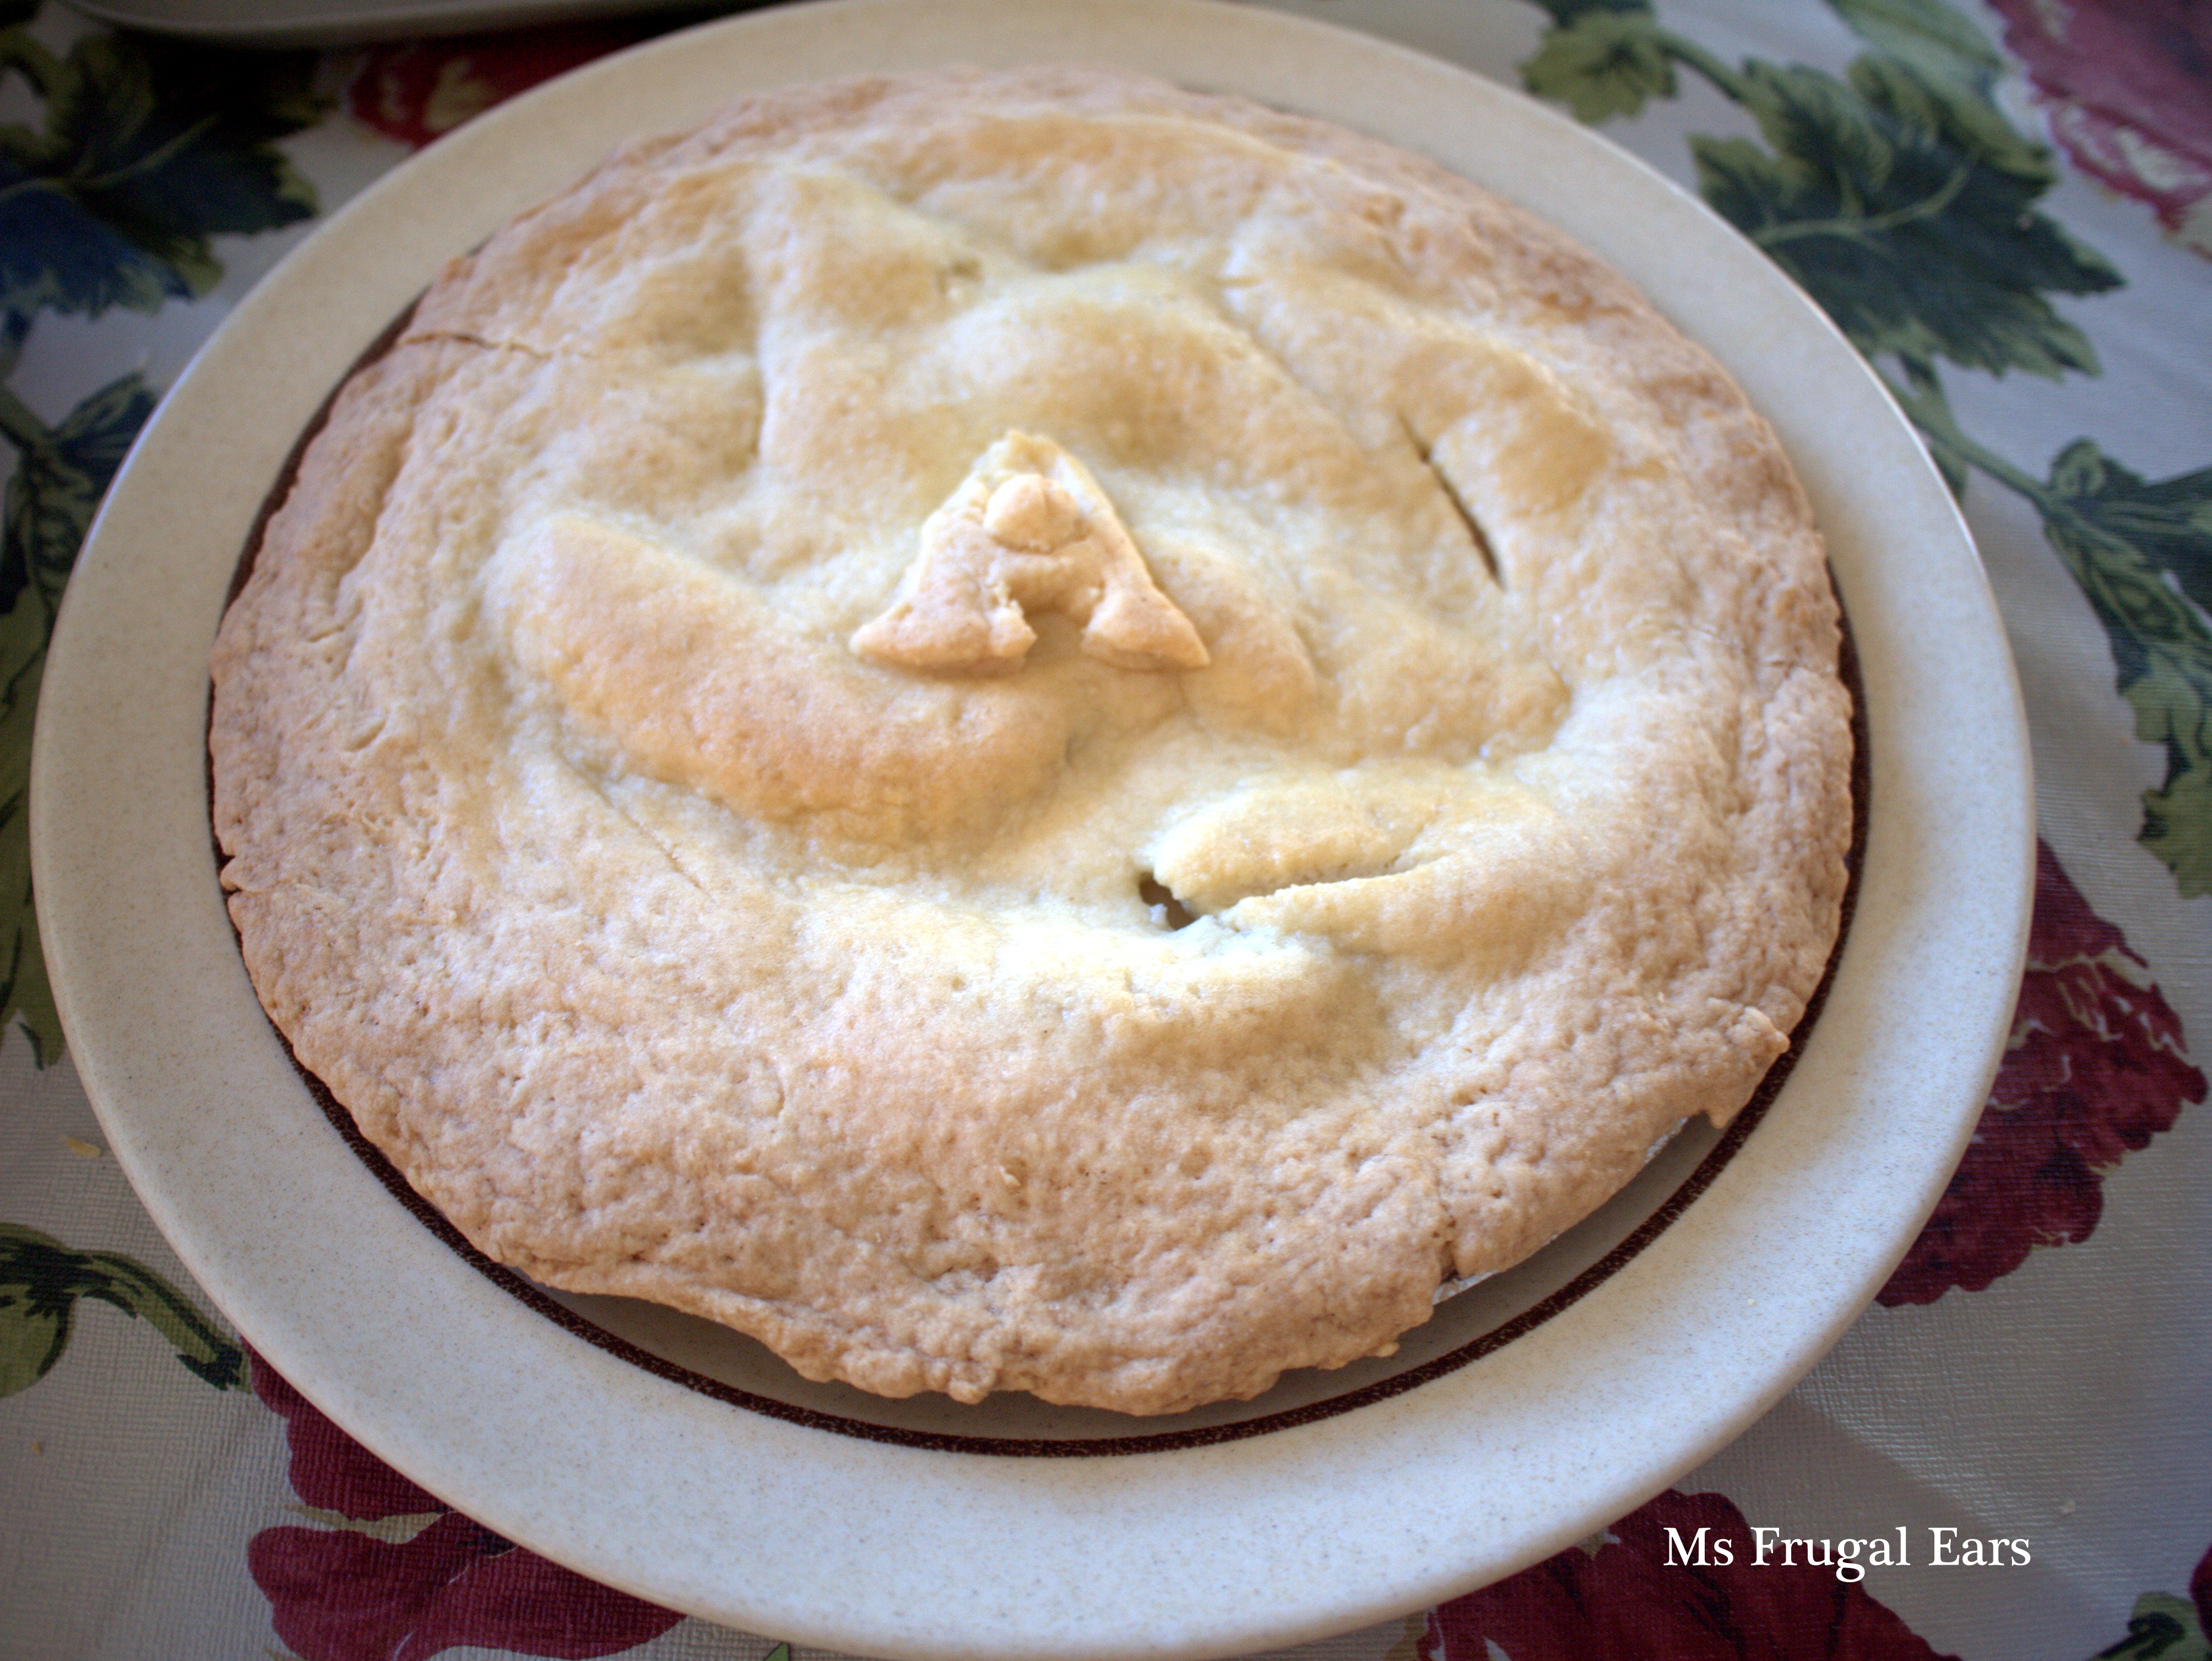 An apple pie with the letter 'A' on top